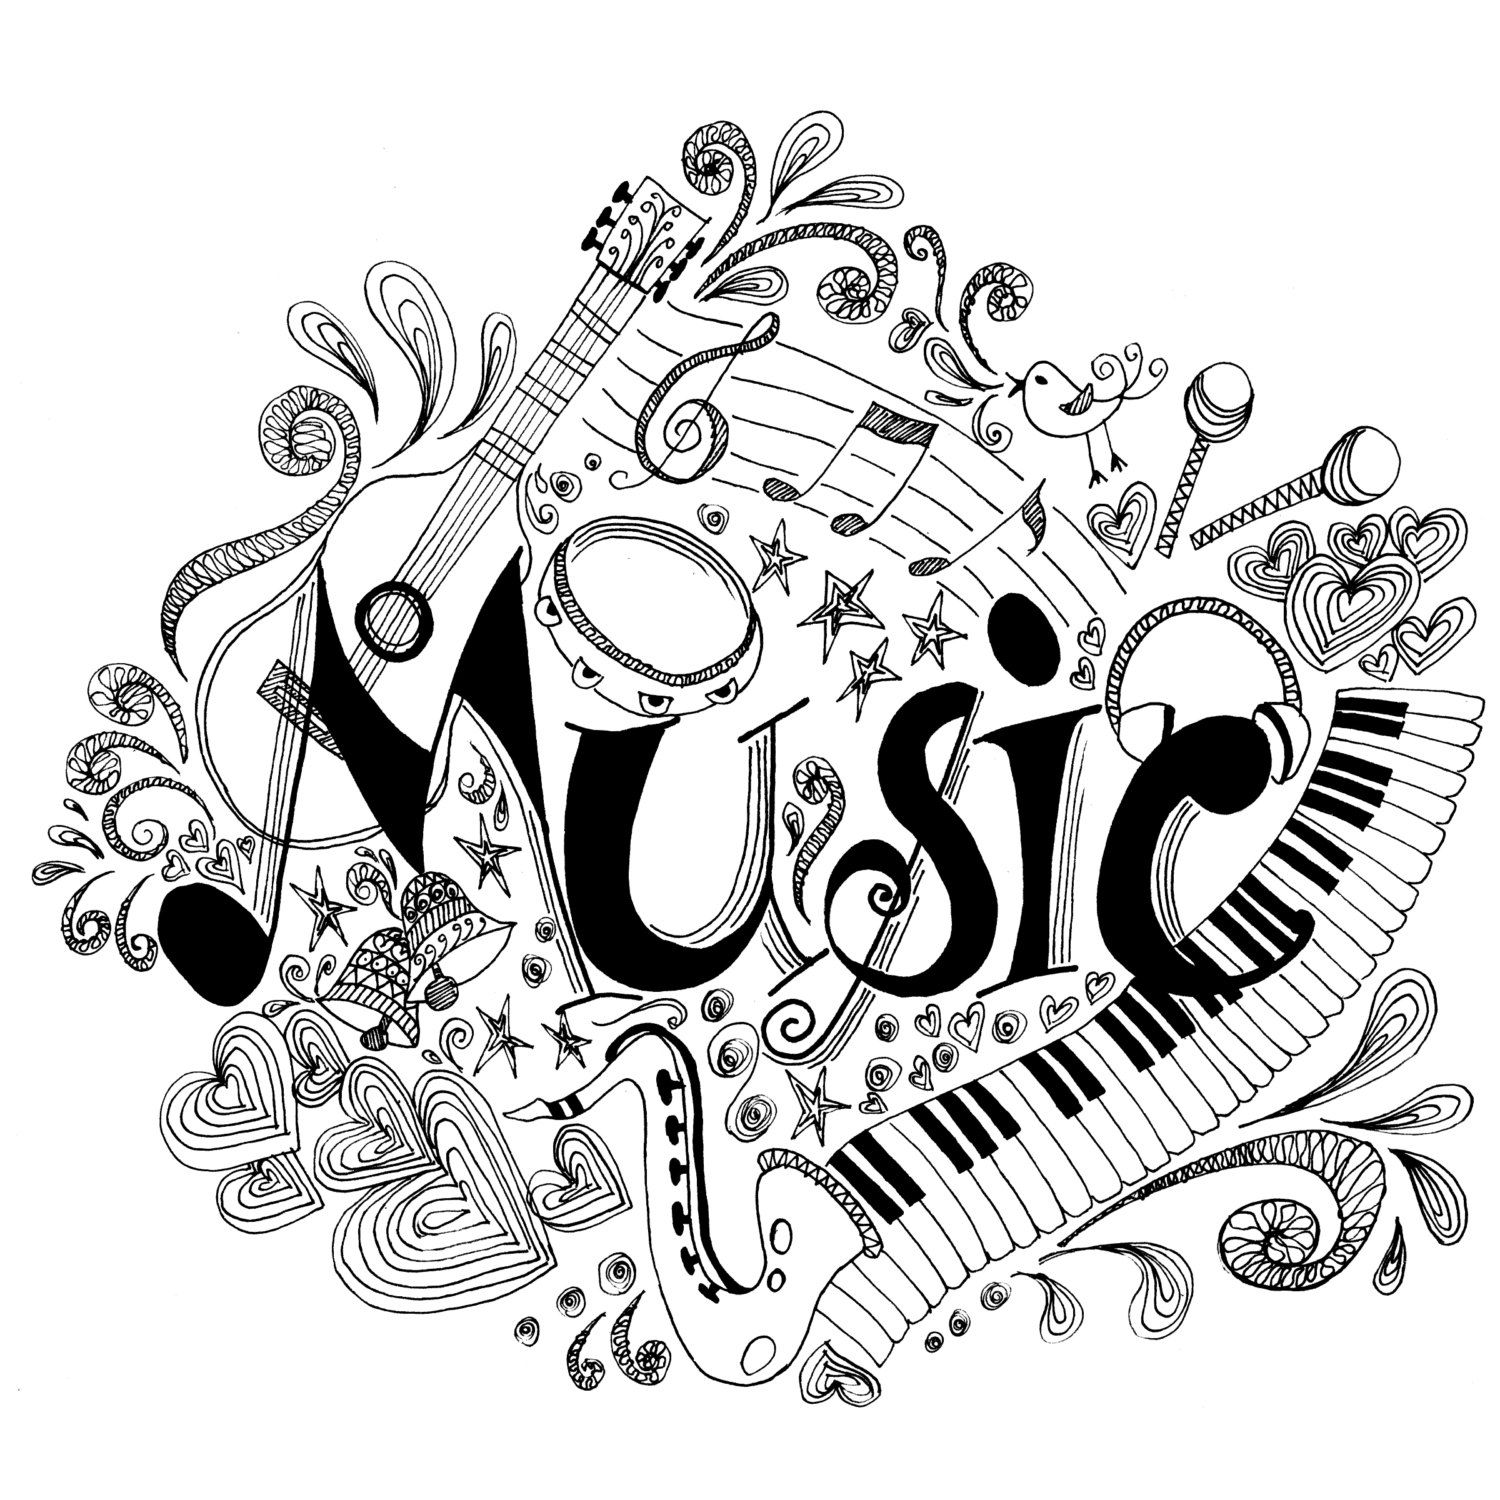 music note coloring pages pdf music coloring pages pdf at getcoloringscom free note pdf pages coloring music